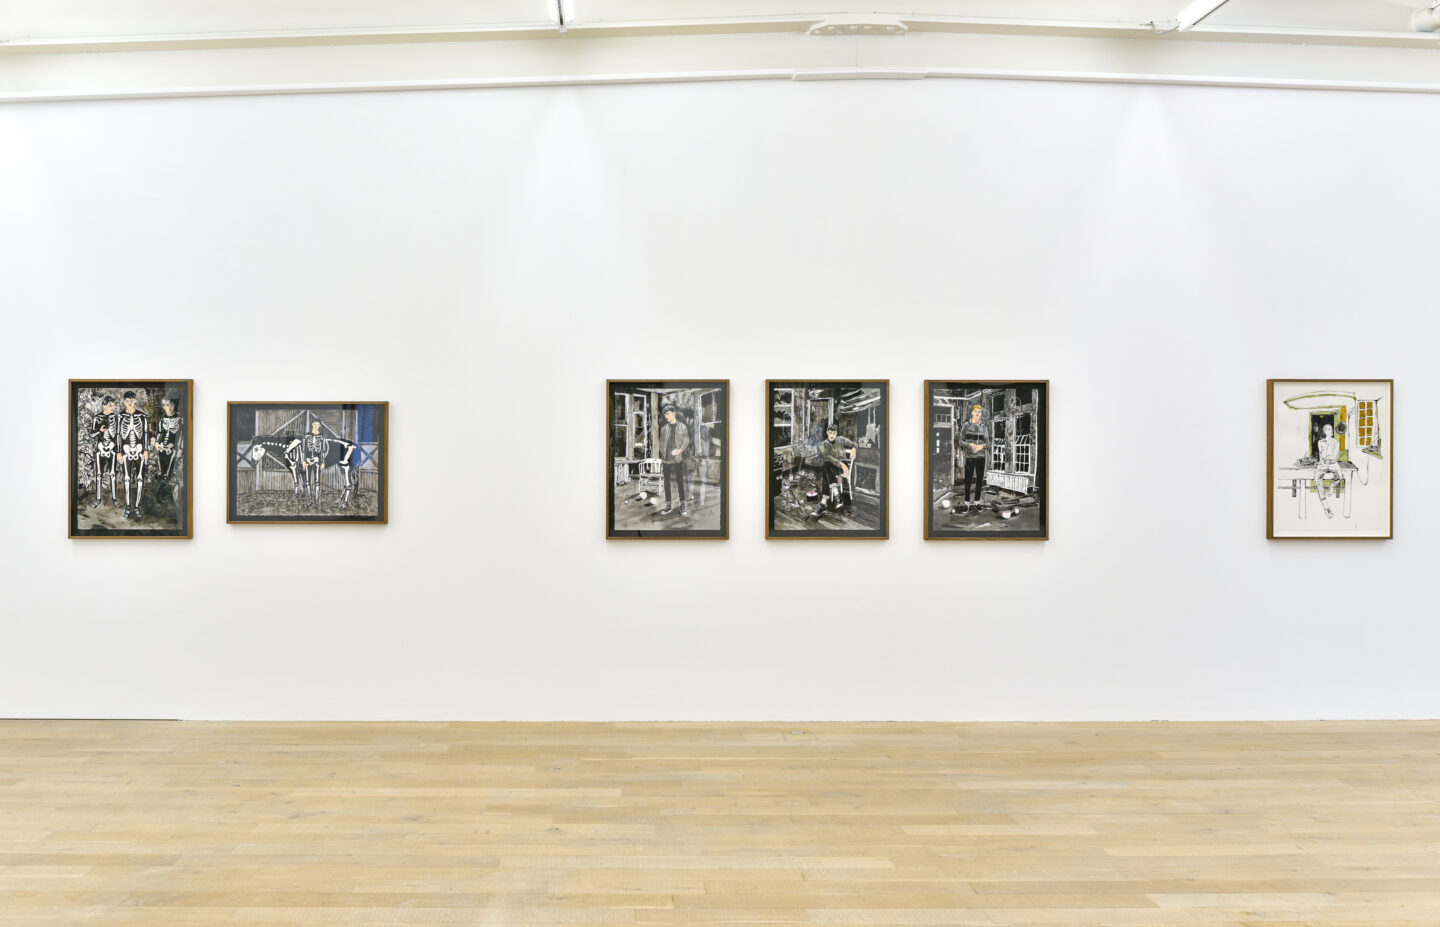 Exhibition View Hernan Bas Soloshow «Interiors» at Galerie Peter Kilchmann, Zurich, 2020 / Courtesy: the artist and Galerie Peter Kilchmann